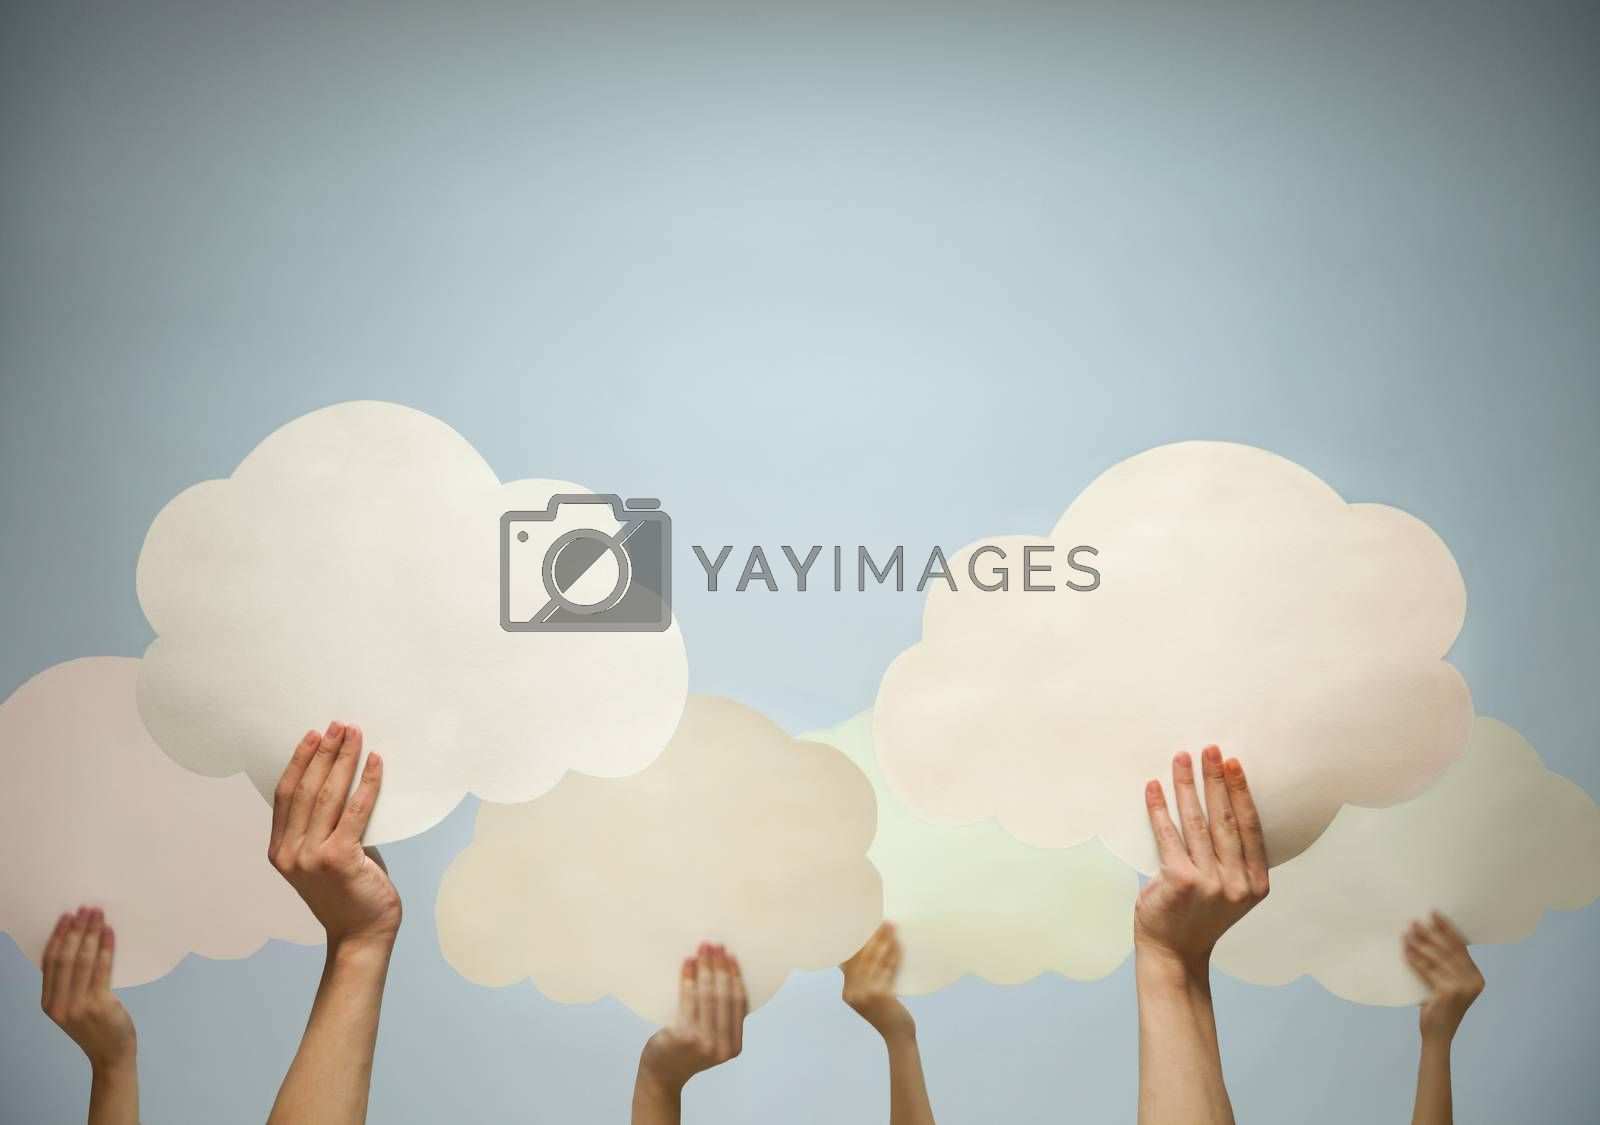 Multiple hands holding cut out paper clouds against a blue background, studio shot